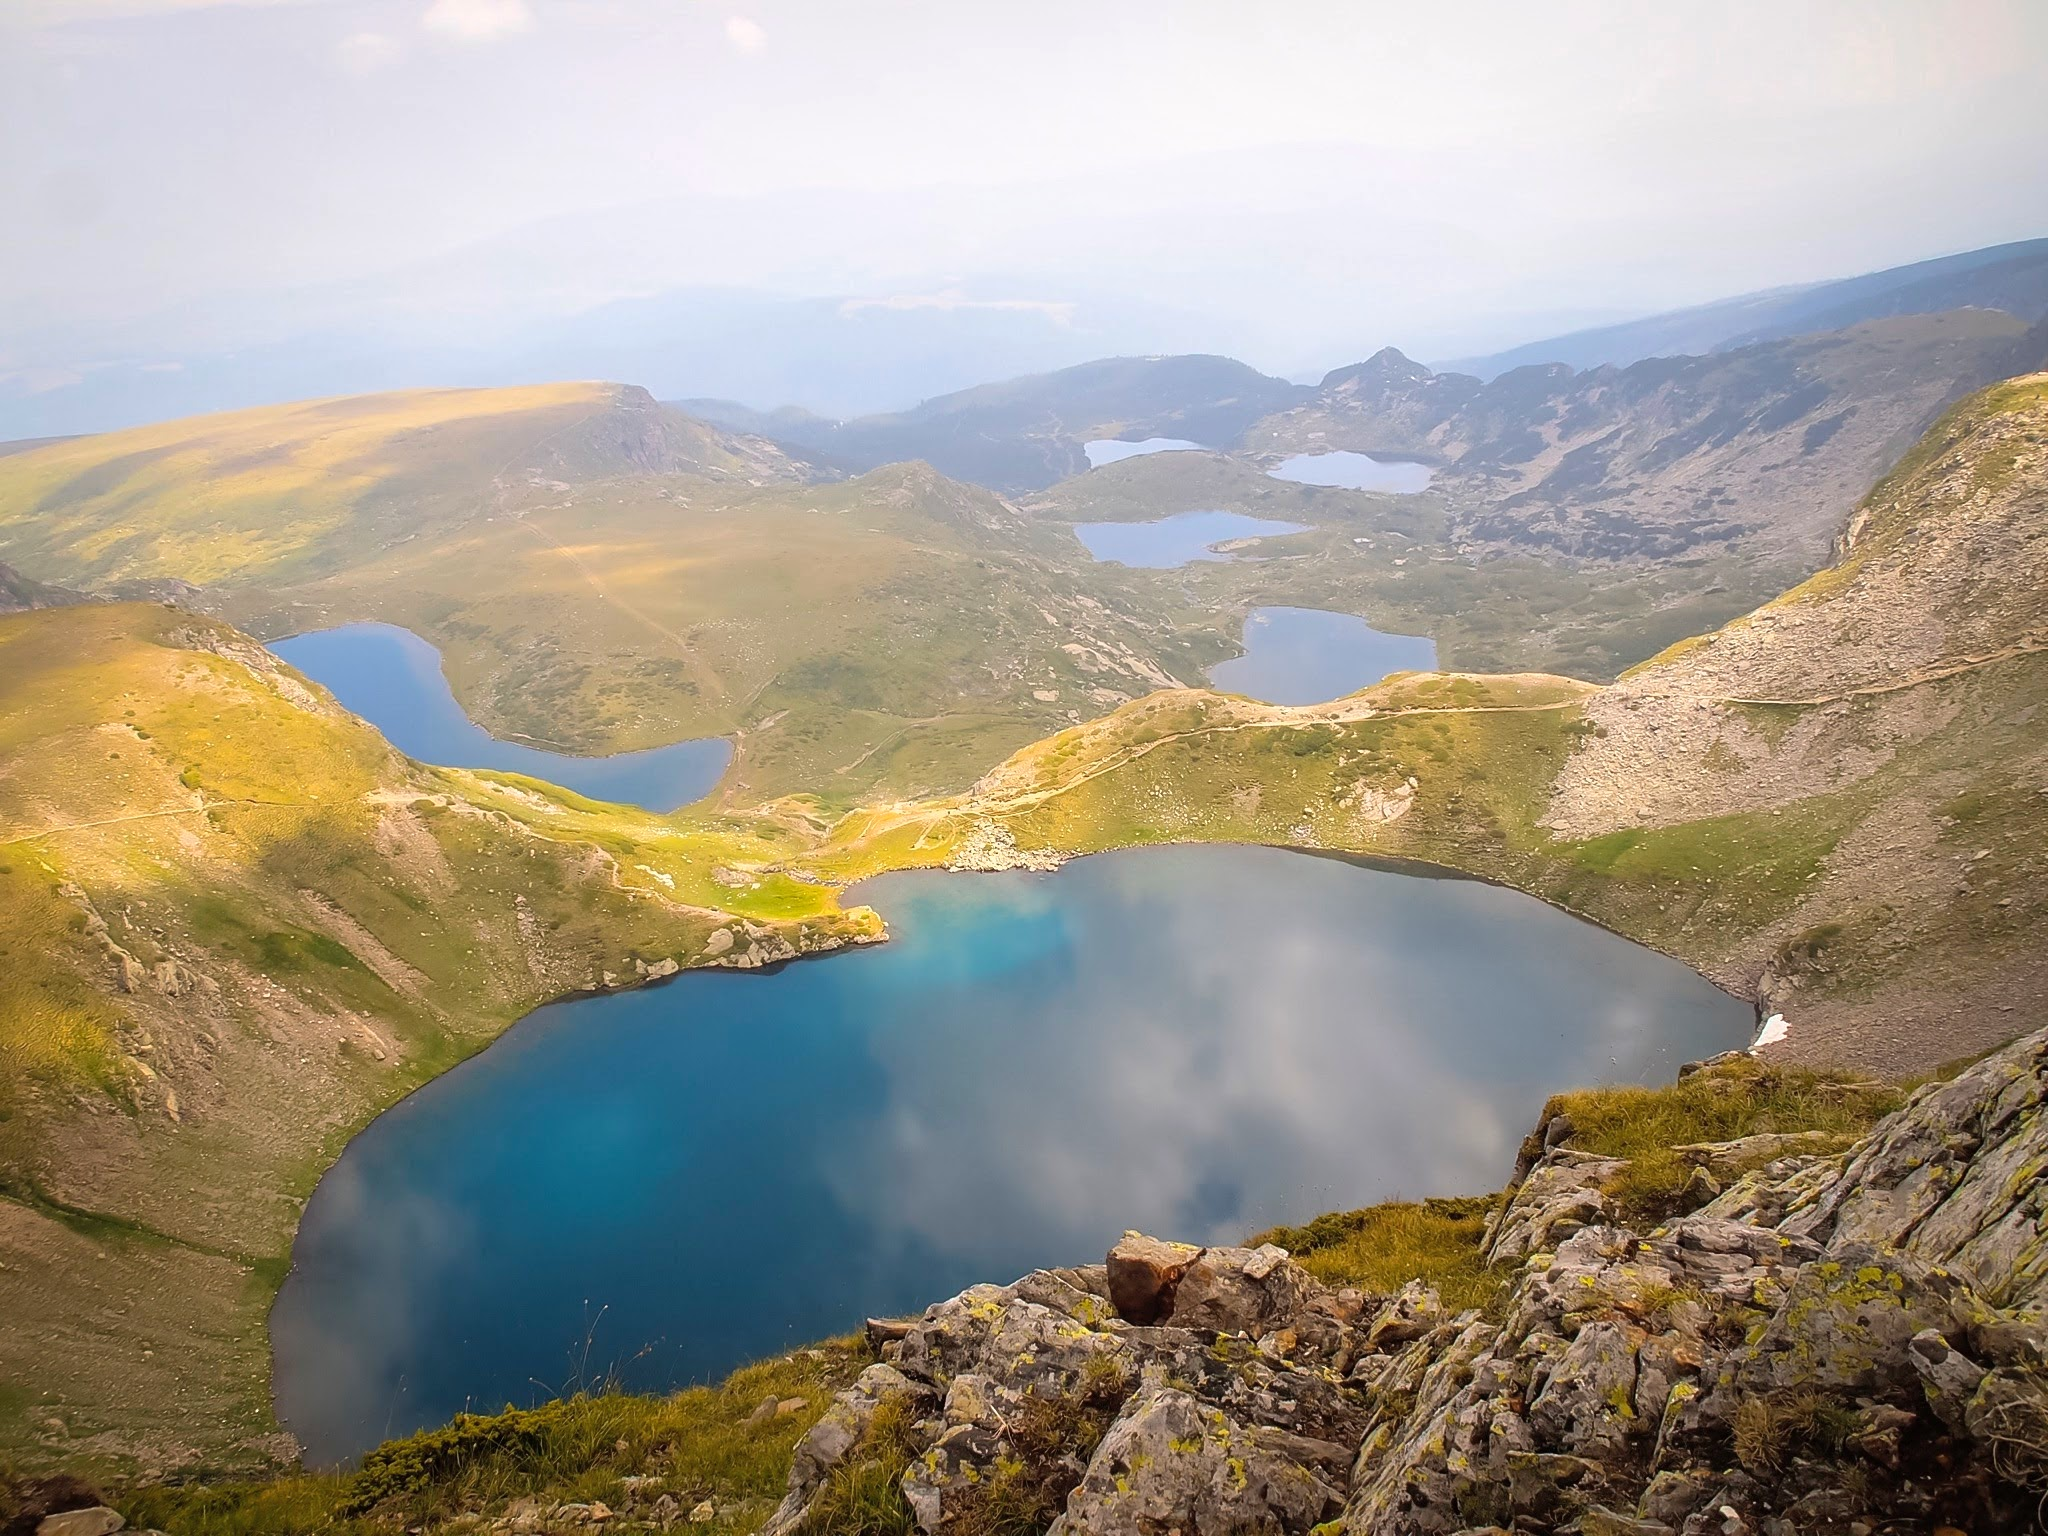 The best viewpoint in 7 Rila Lake hike